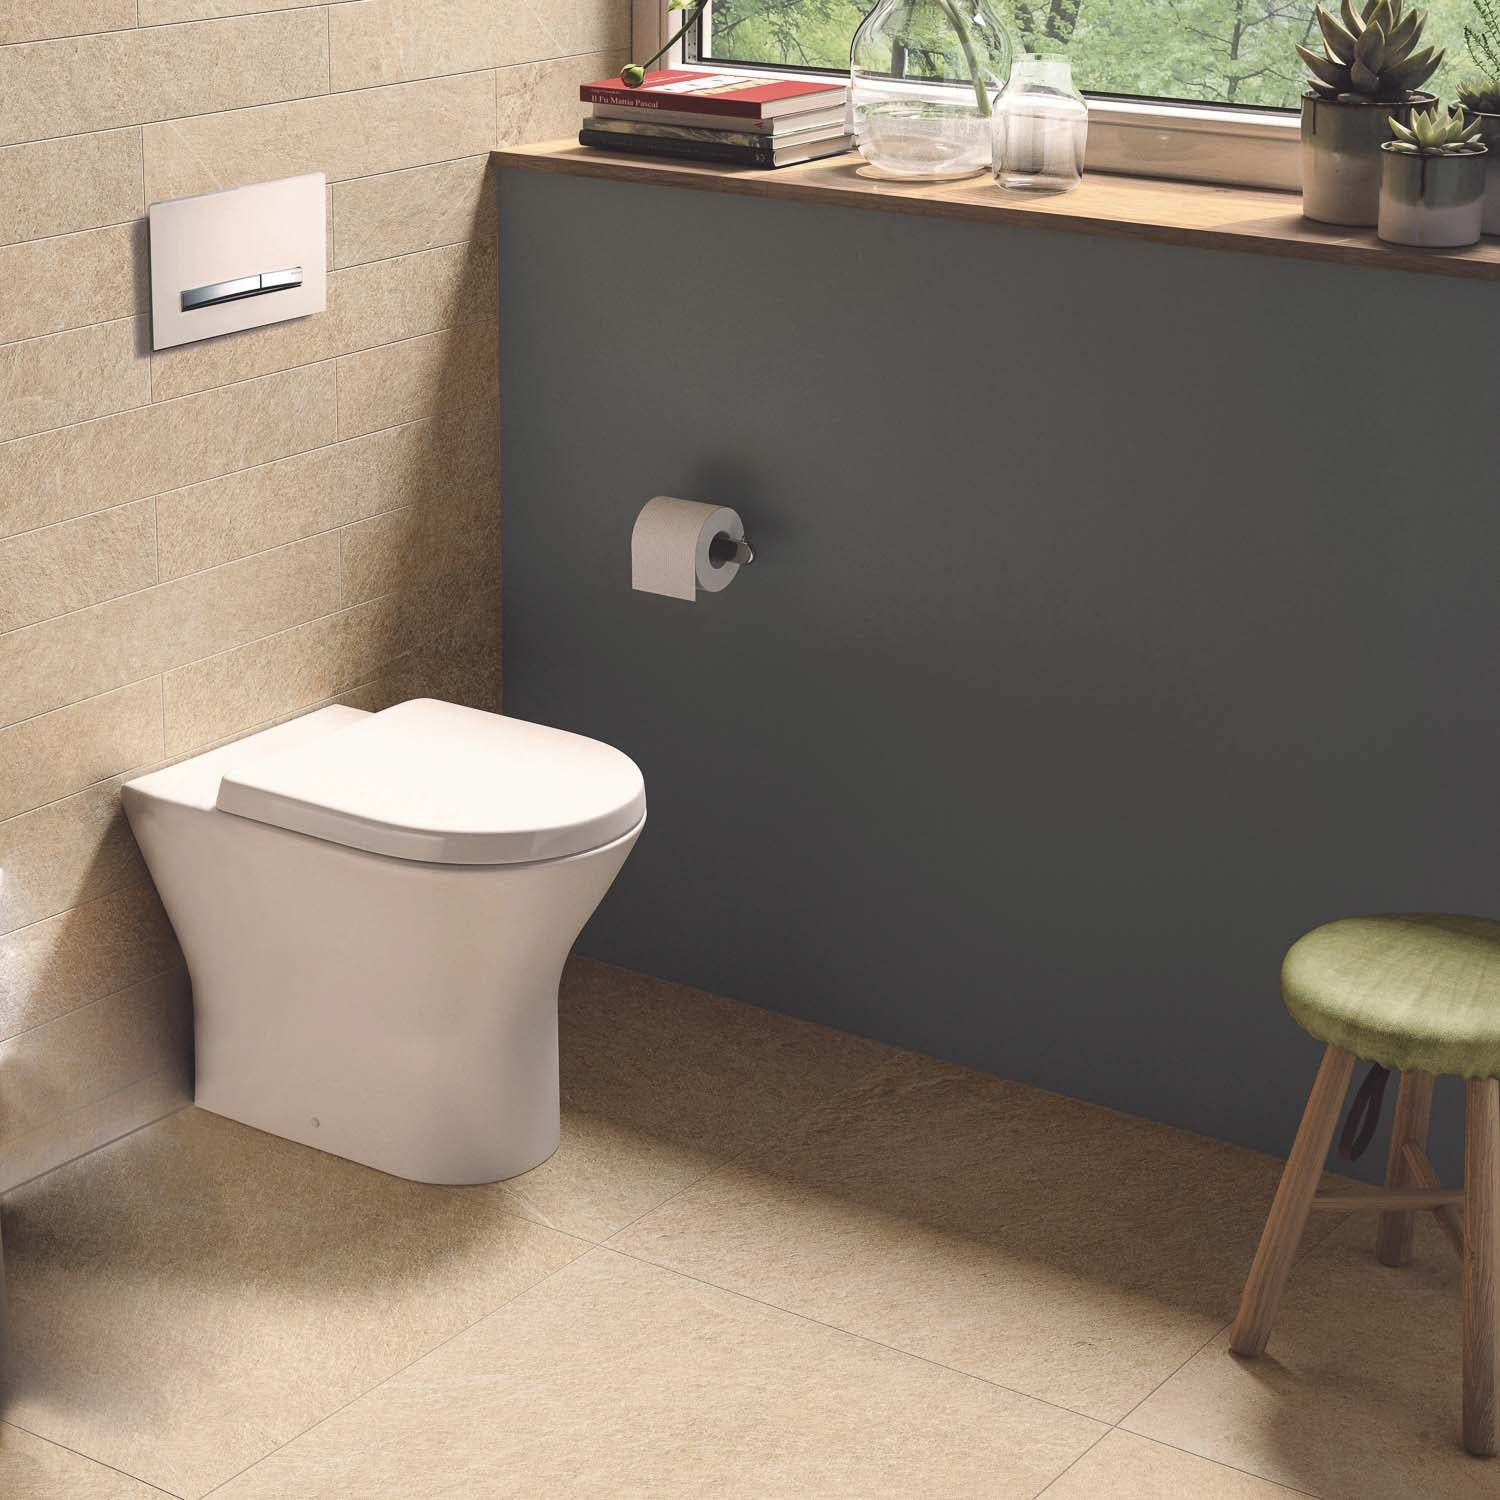 425mm Vesta Comfort Height Back to Wall Toilet without a seat and cover lifestyle image